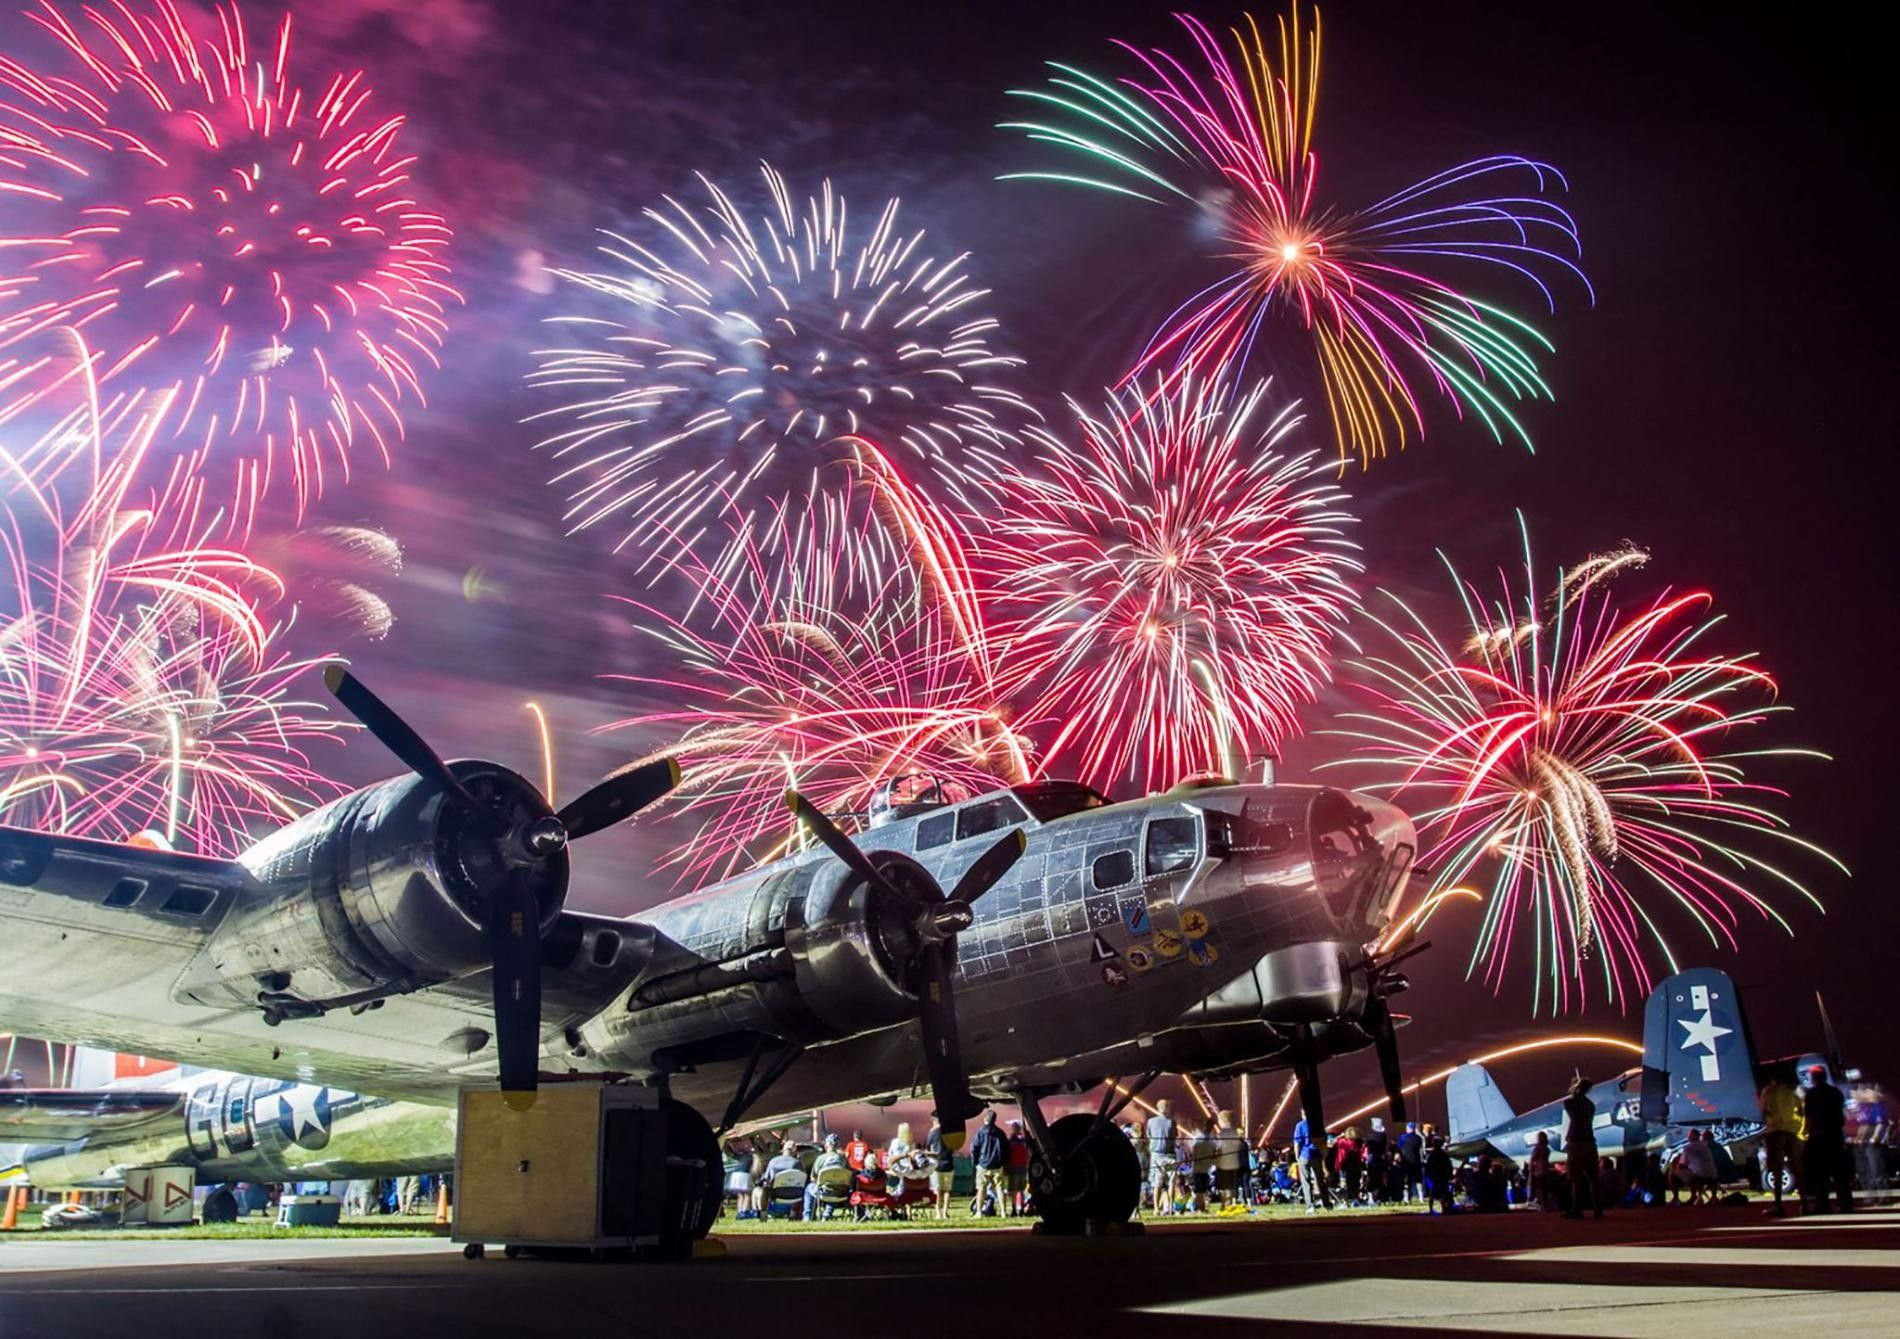 Hundreds of thousands of aviation enthusiasts flock to